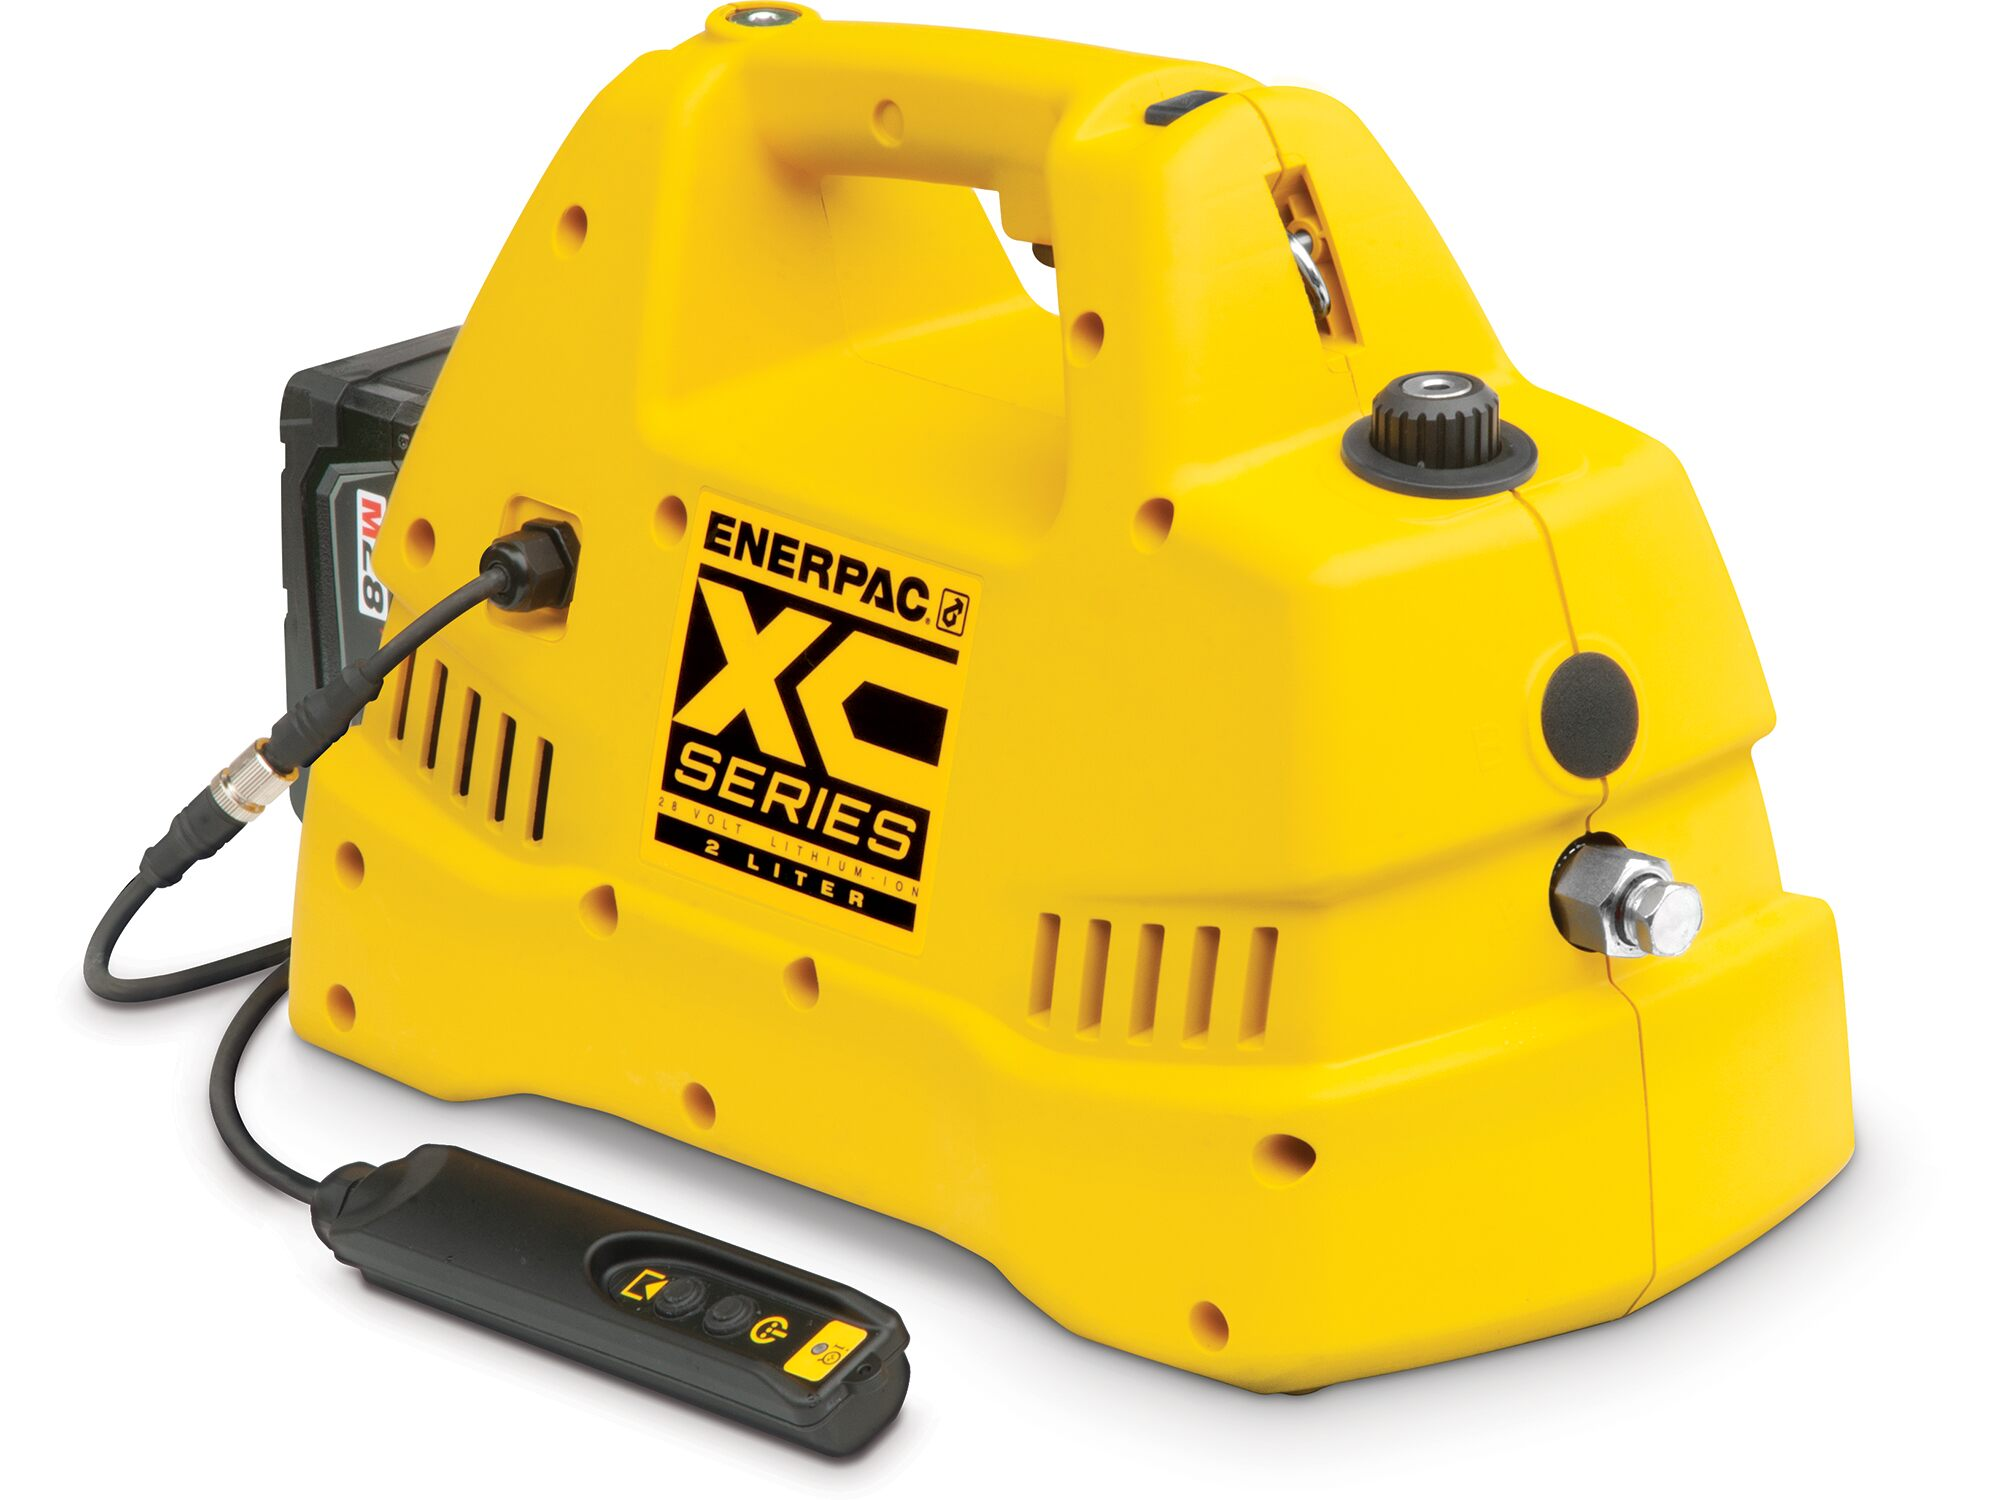 Enerpac launches new XC Cordless Pump!